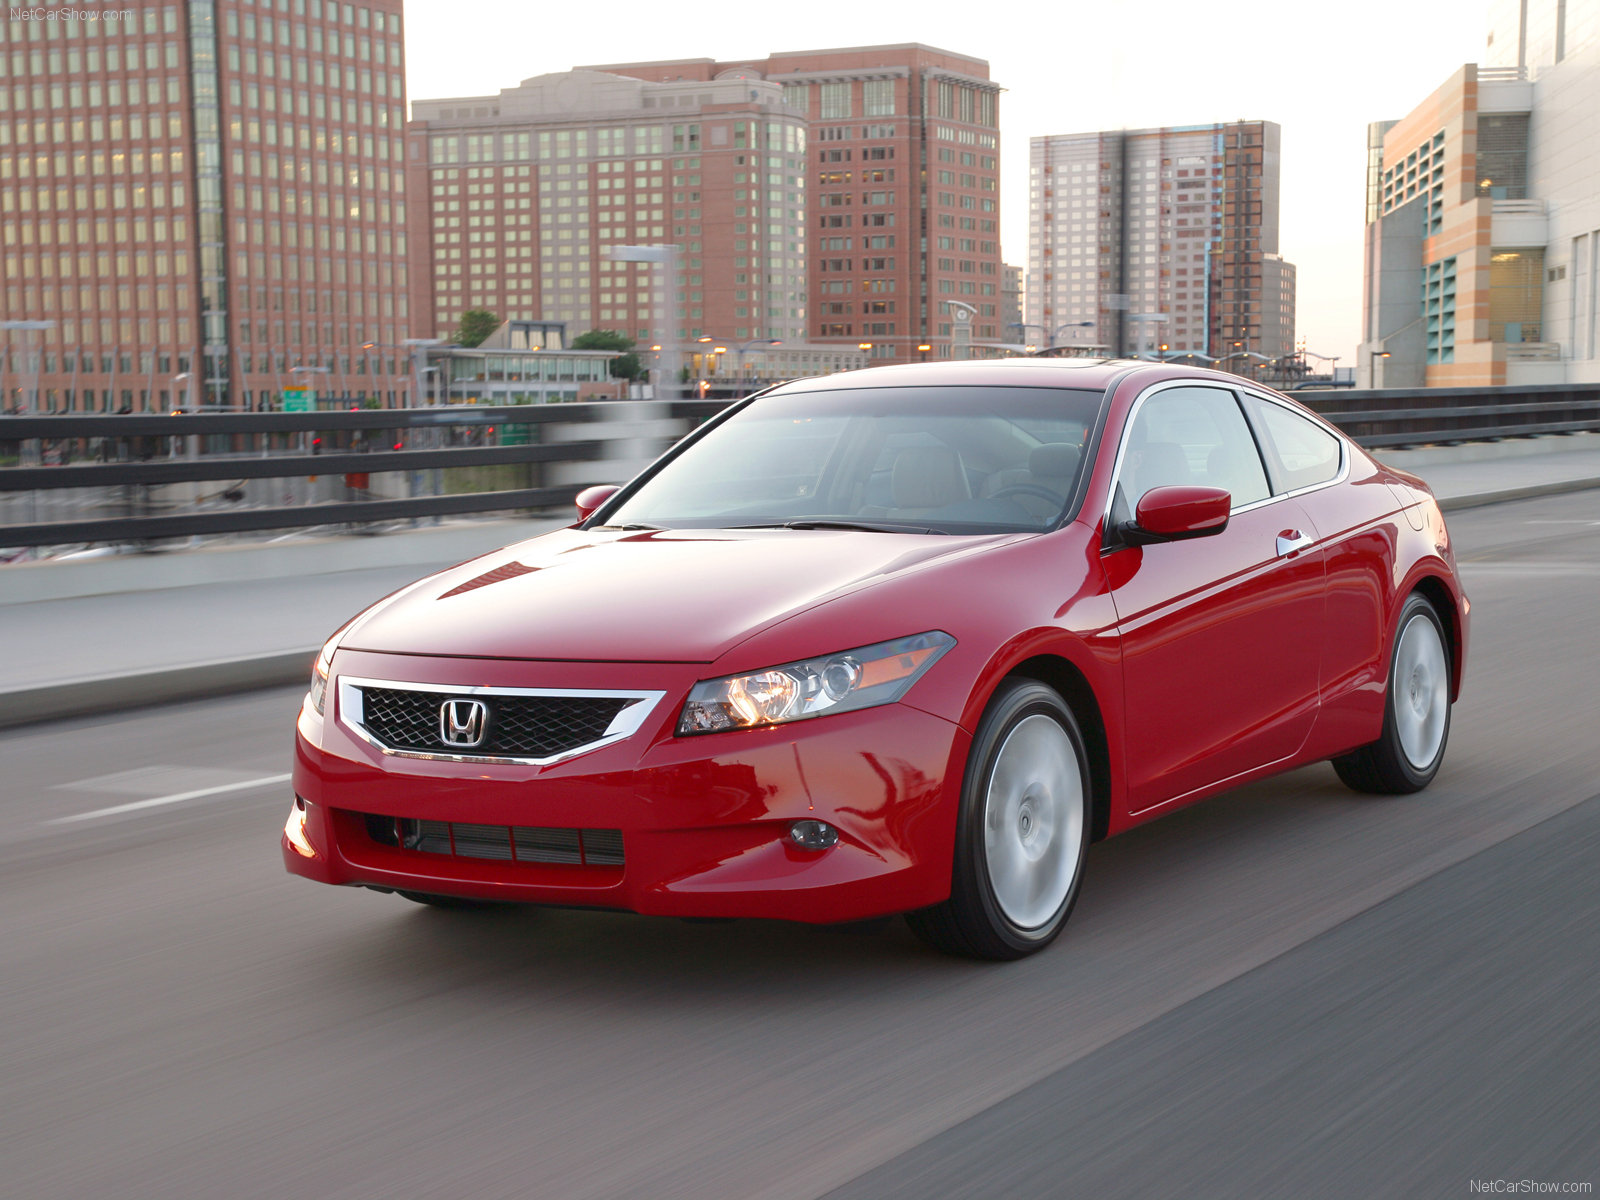 Honda Accord EX-L V6 Coupe photo 46439